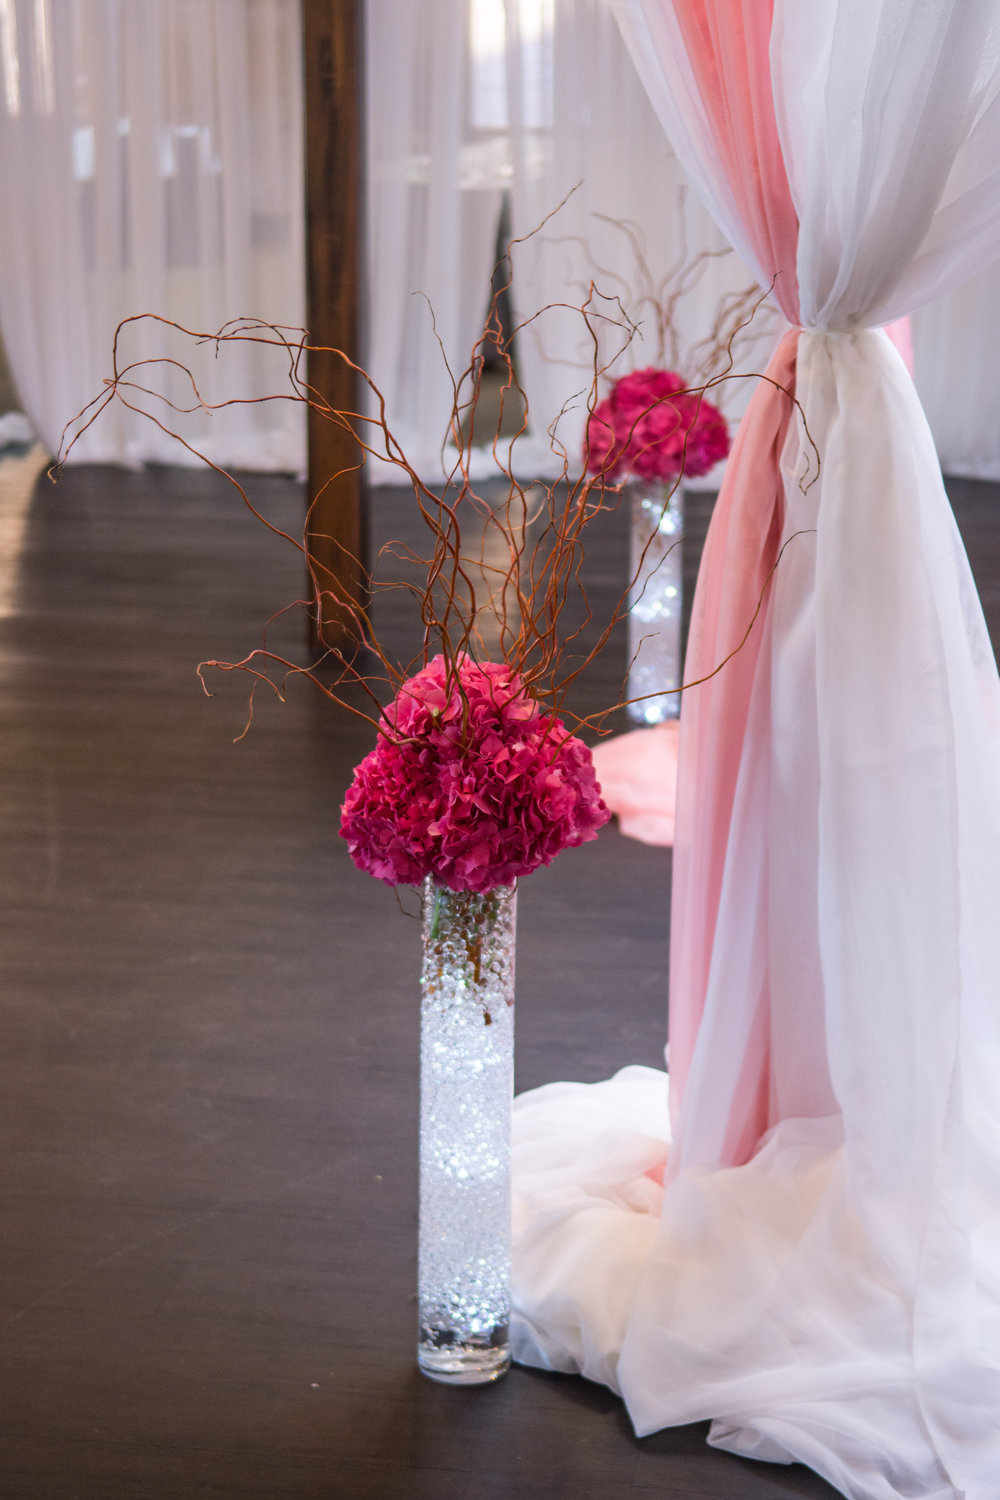 Photography: Coopersmith Photography | Planner: The Simply Elegant Group | DJ: Adagio Djay Entertainment | Bakery:Cocoa and Fig | Dress Designer:JenMar Creations | Floral Designer:Julia's Blooms | Event Venue: The Riverside Room at Minneapolis Event Center